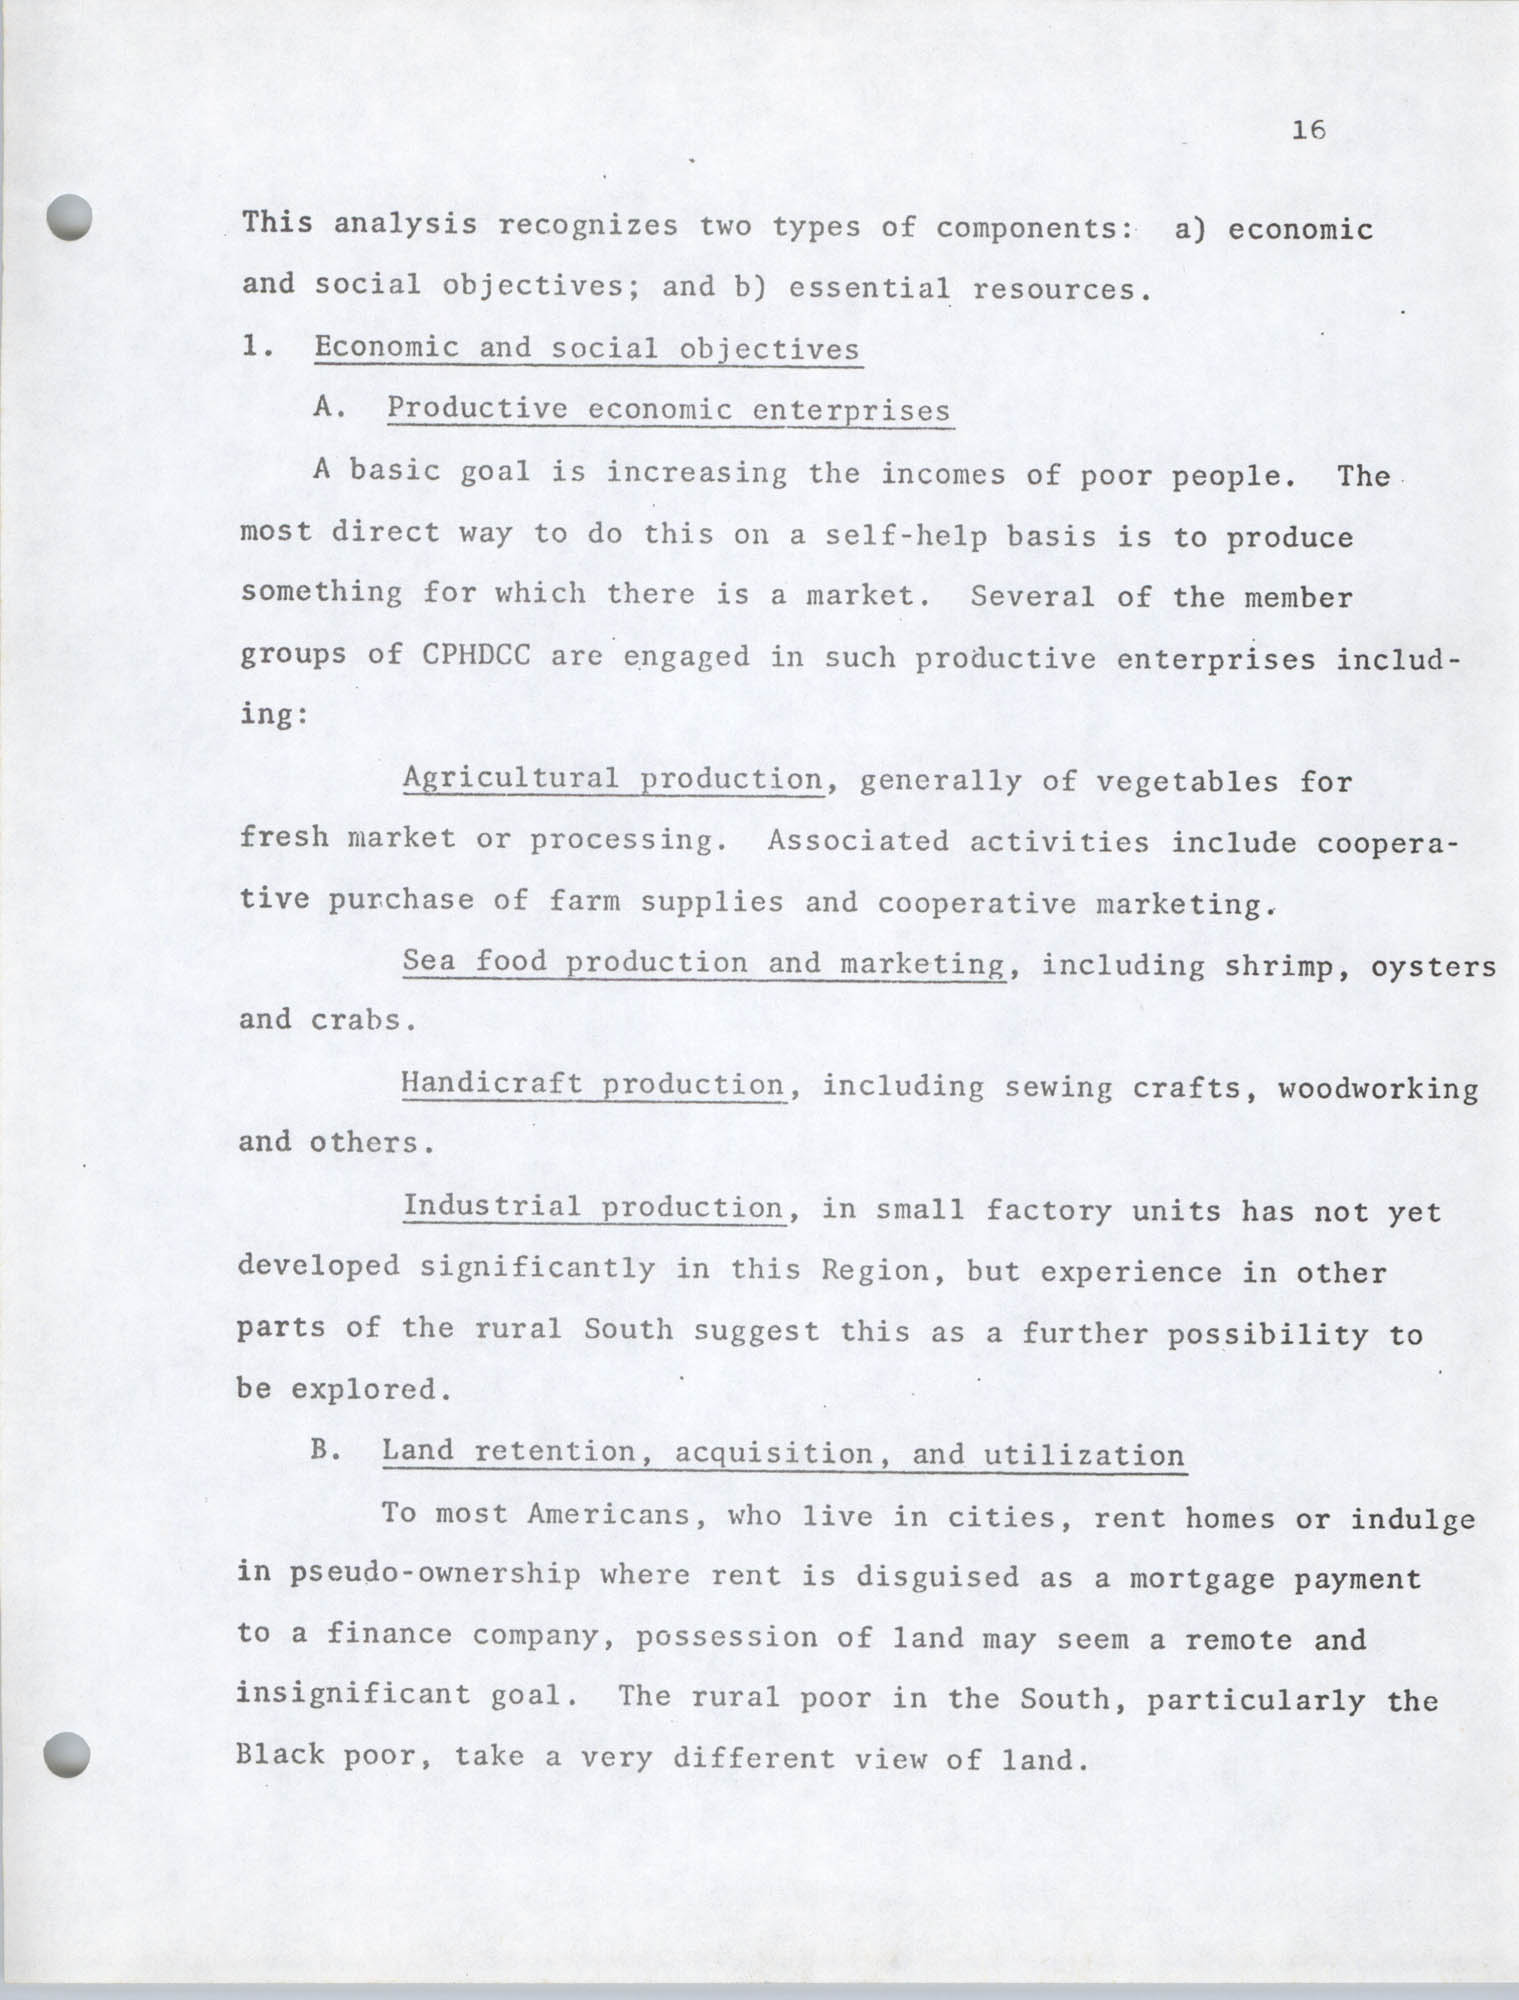 Coastal Plains Human Development Coordinate Council, Page 16